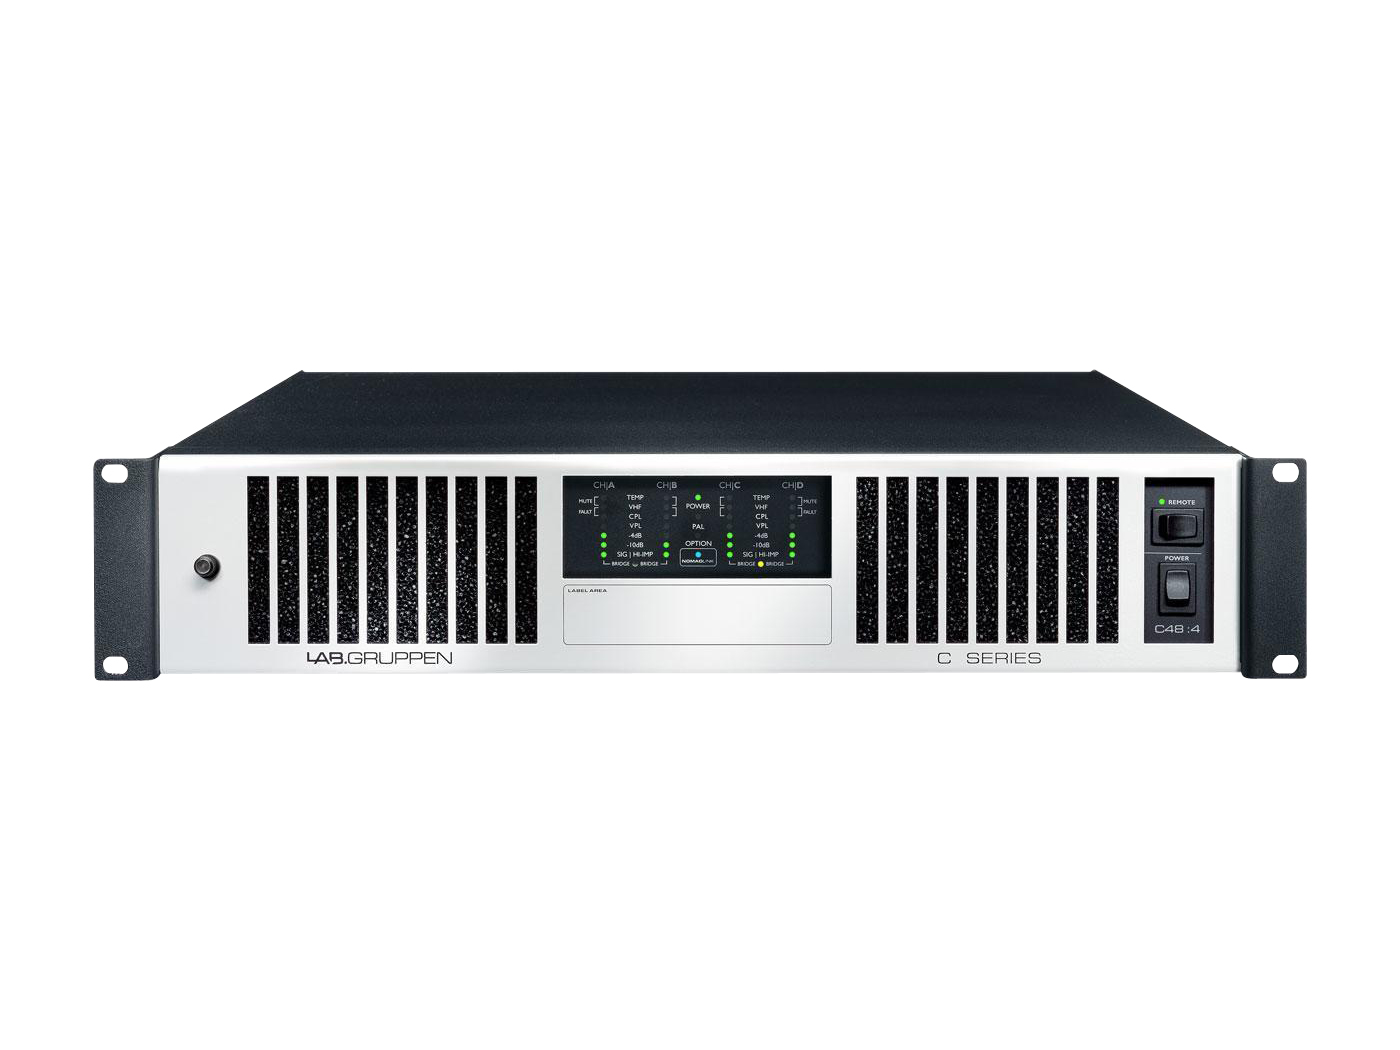 Lab.gruppen C 48:4 230E 4800W 4-Ch Amplifier w NomadLink Network Monitoring/Dedicated Control for Install Applications/230E